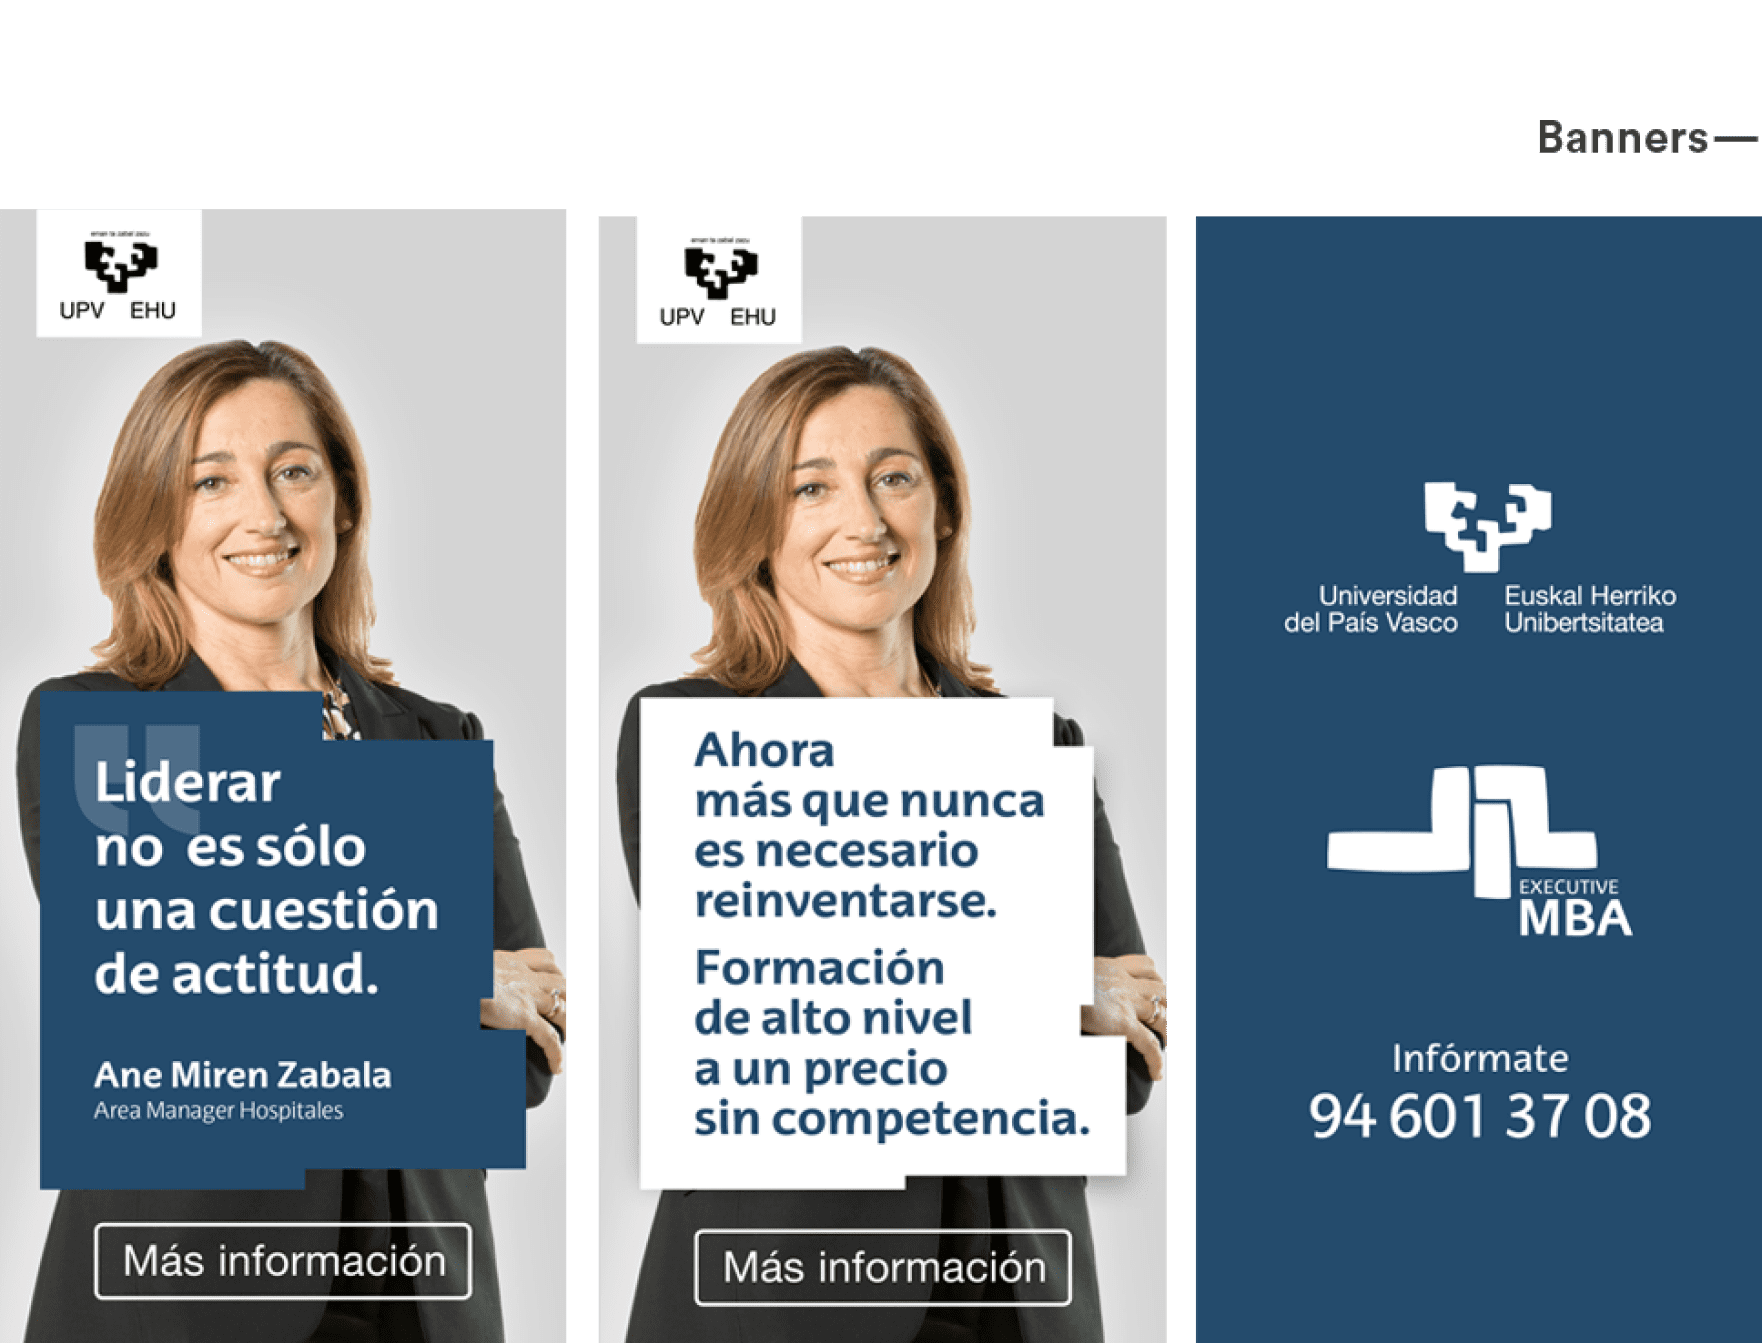 EXECUTIVE MBA BANNERS CANAL DIRECTO